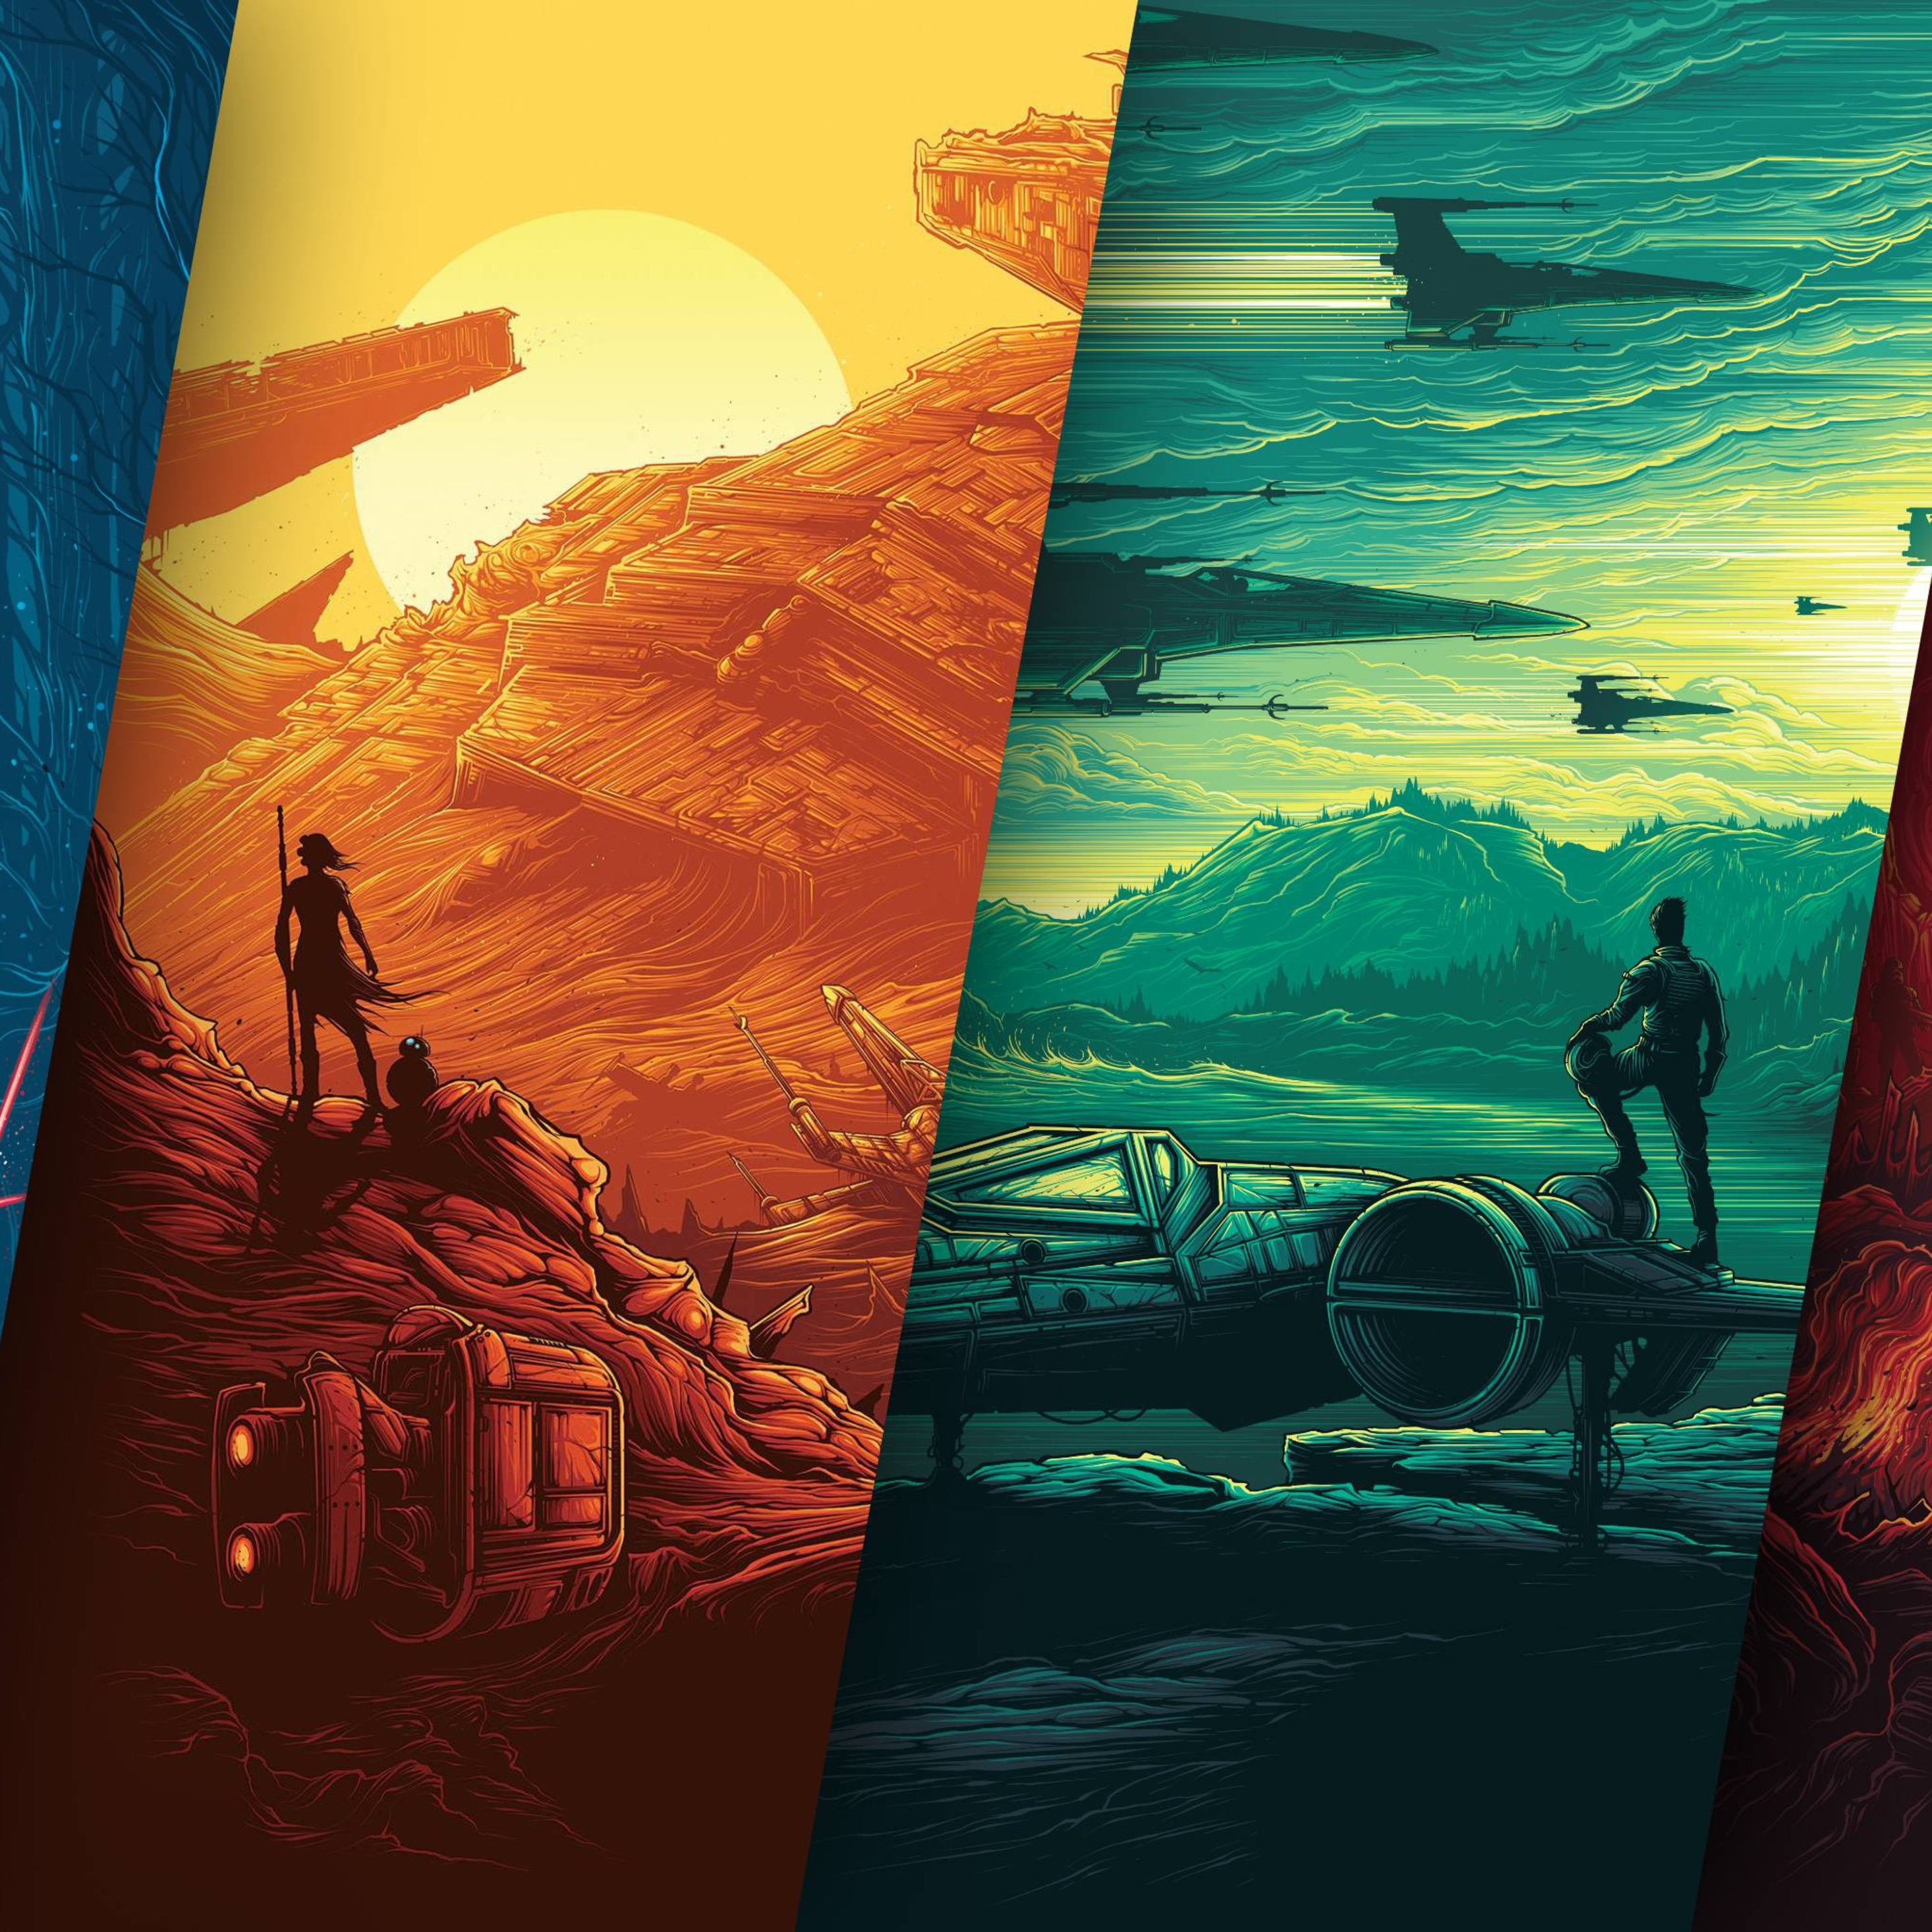 Star Wars The Force Awakens Iphone Wallpaper Posted By Ryan Simpson